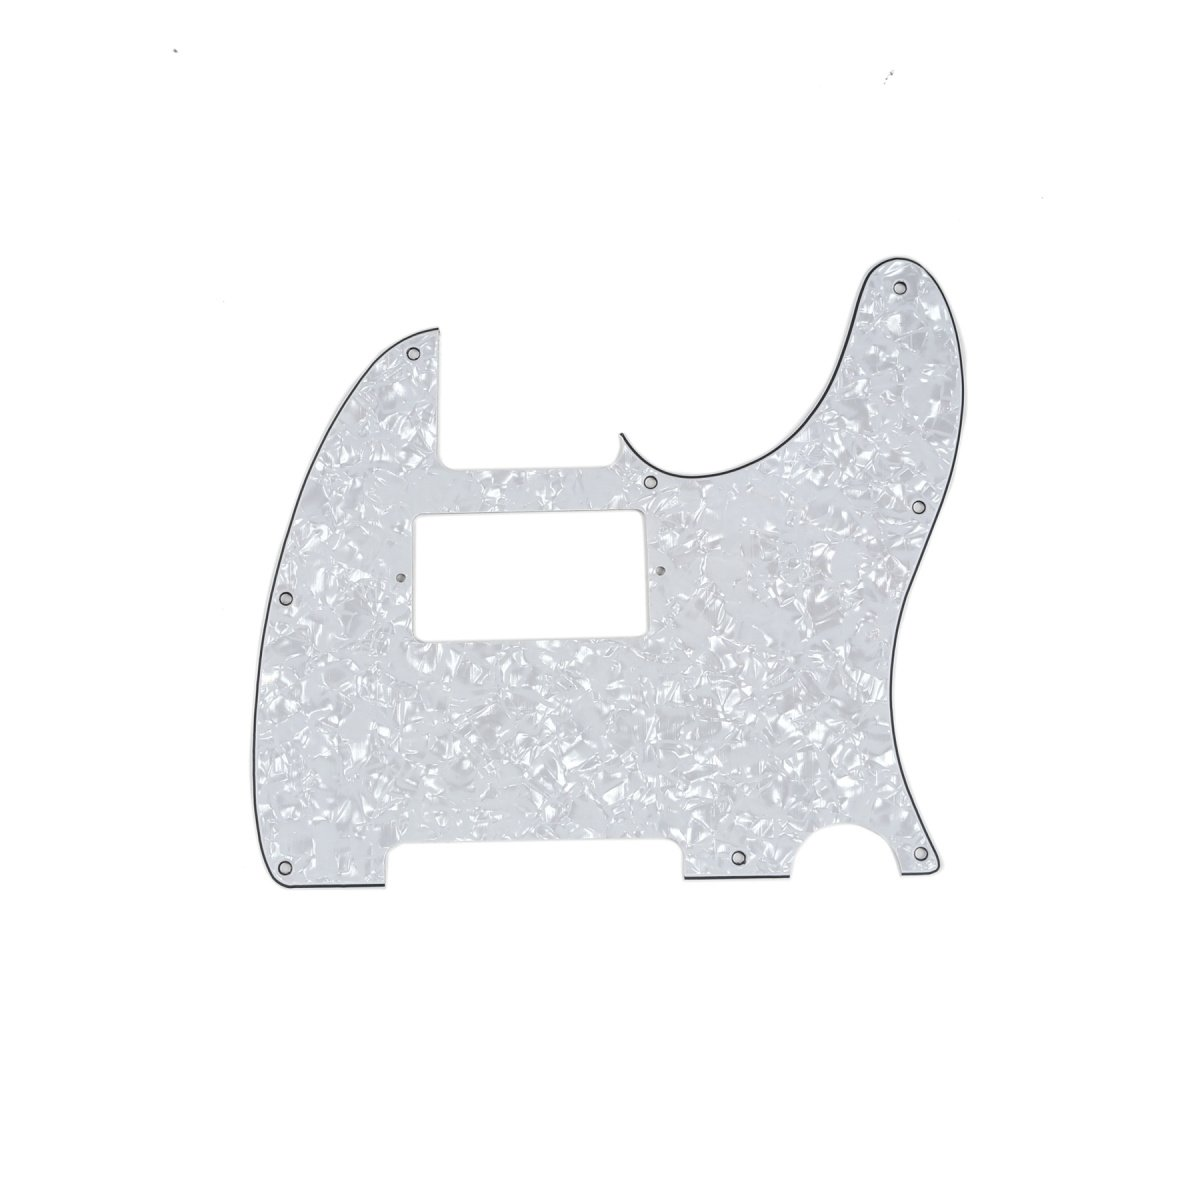 Musiclily 8 Hole Guitar Telecaster Pickguard Humbucker HH Scratch Plate for Fender USA/Mexican Standard Tele Parts, White Pearl 4 Ply MX0274